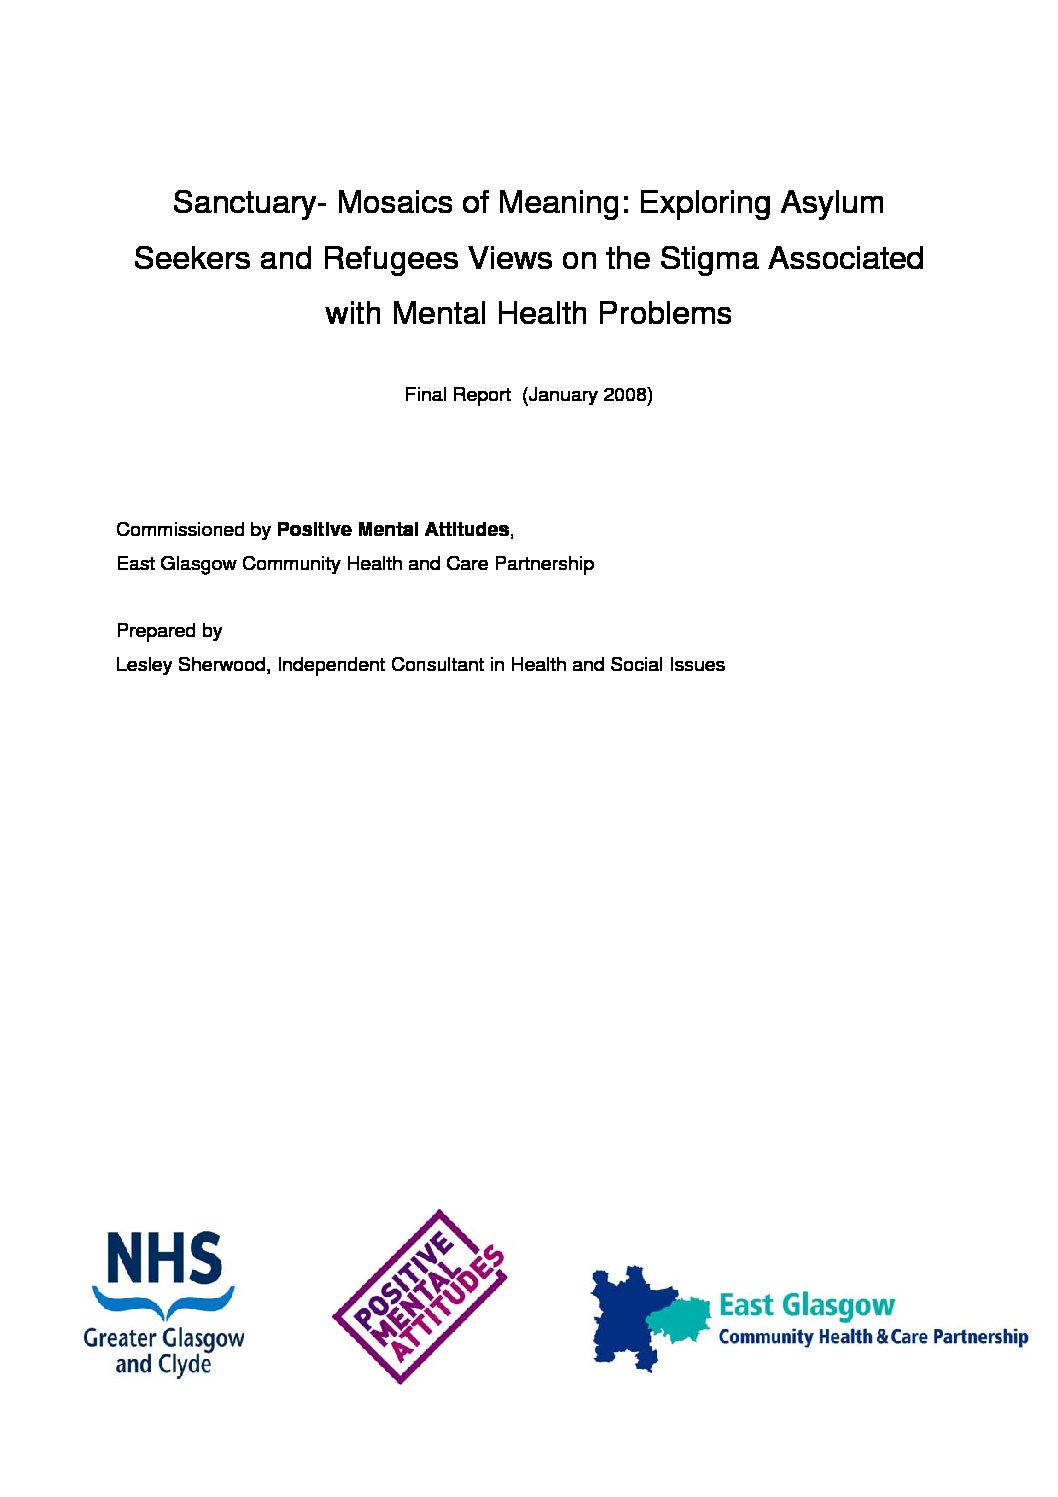 Sanctuary-Mosaics-of-Meaning-Exploring-Asylum-Seekers-and-Refugees-Views-on-the-Stigma-Associated-with-Mental-Health-Problems-pdf